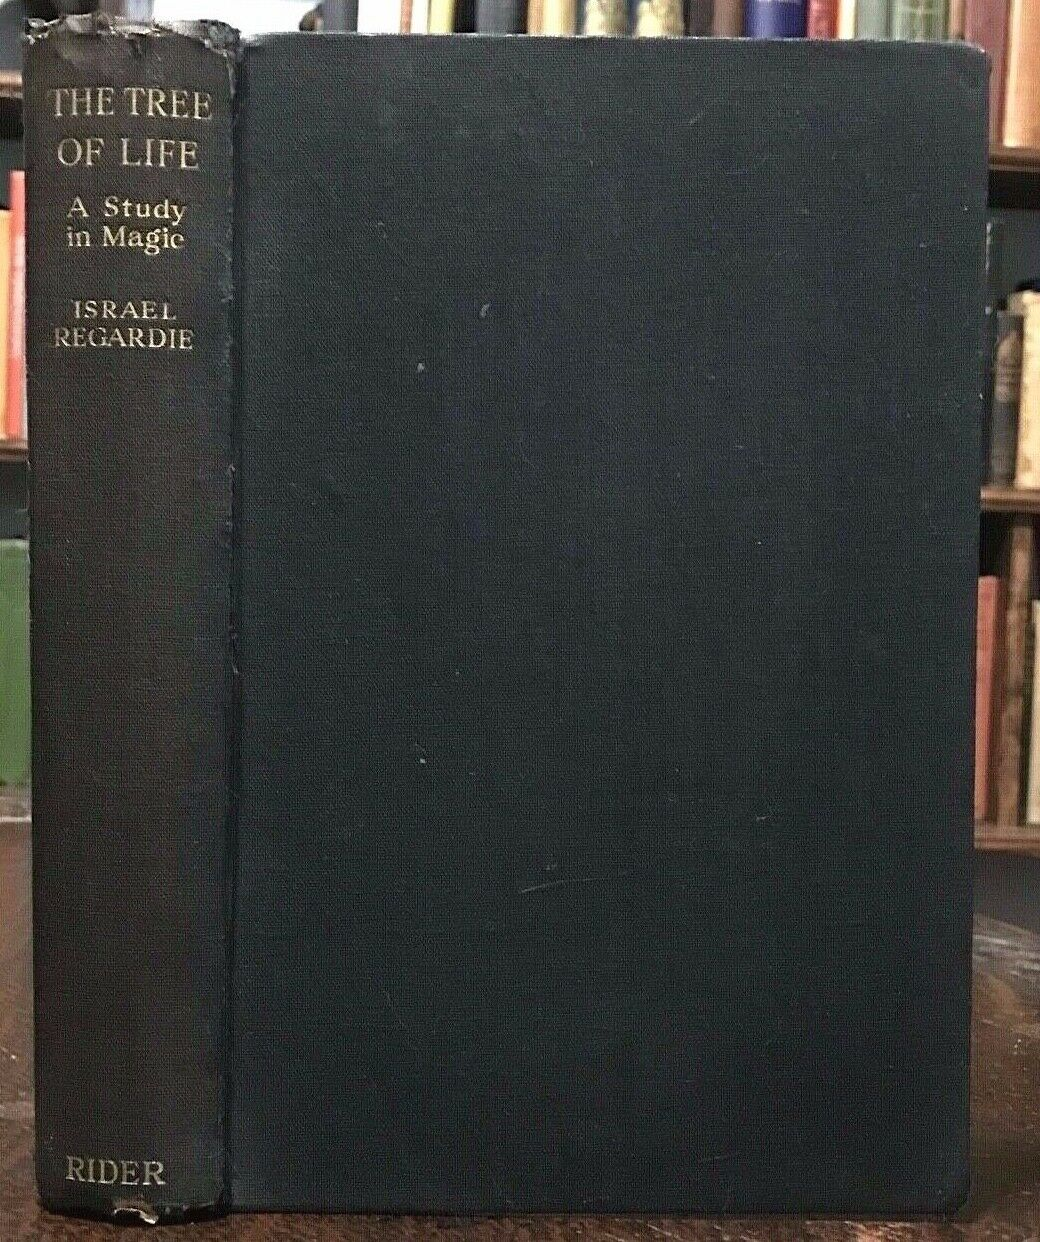 TREE OF LIFE: A STUDY IN MAGIC - Israel Regardie, 1st 1932 MAGICK, SIGNED COPY